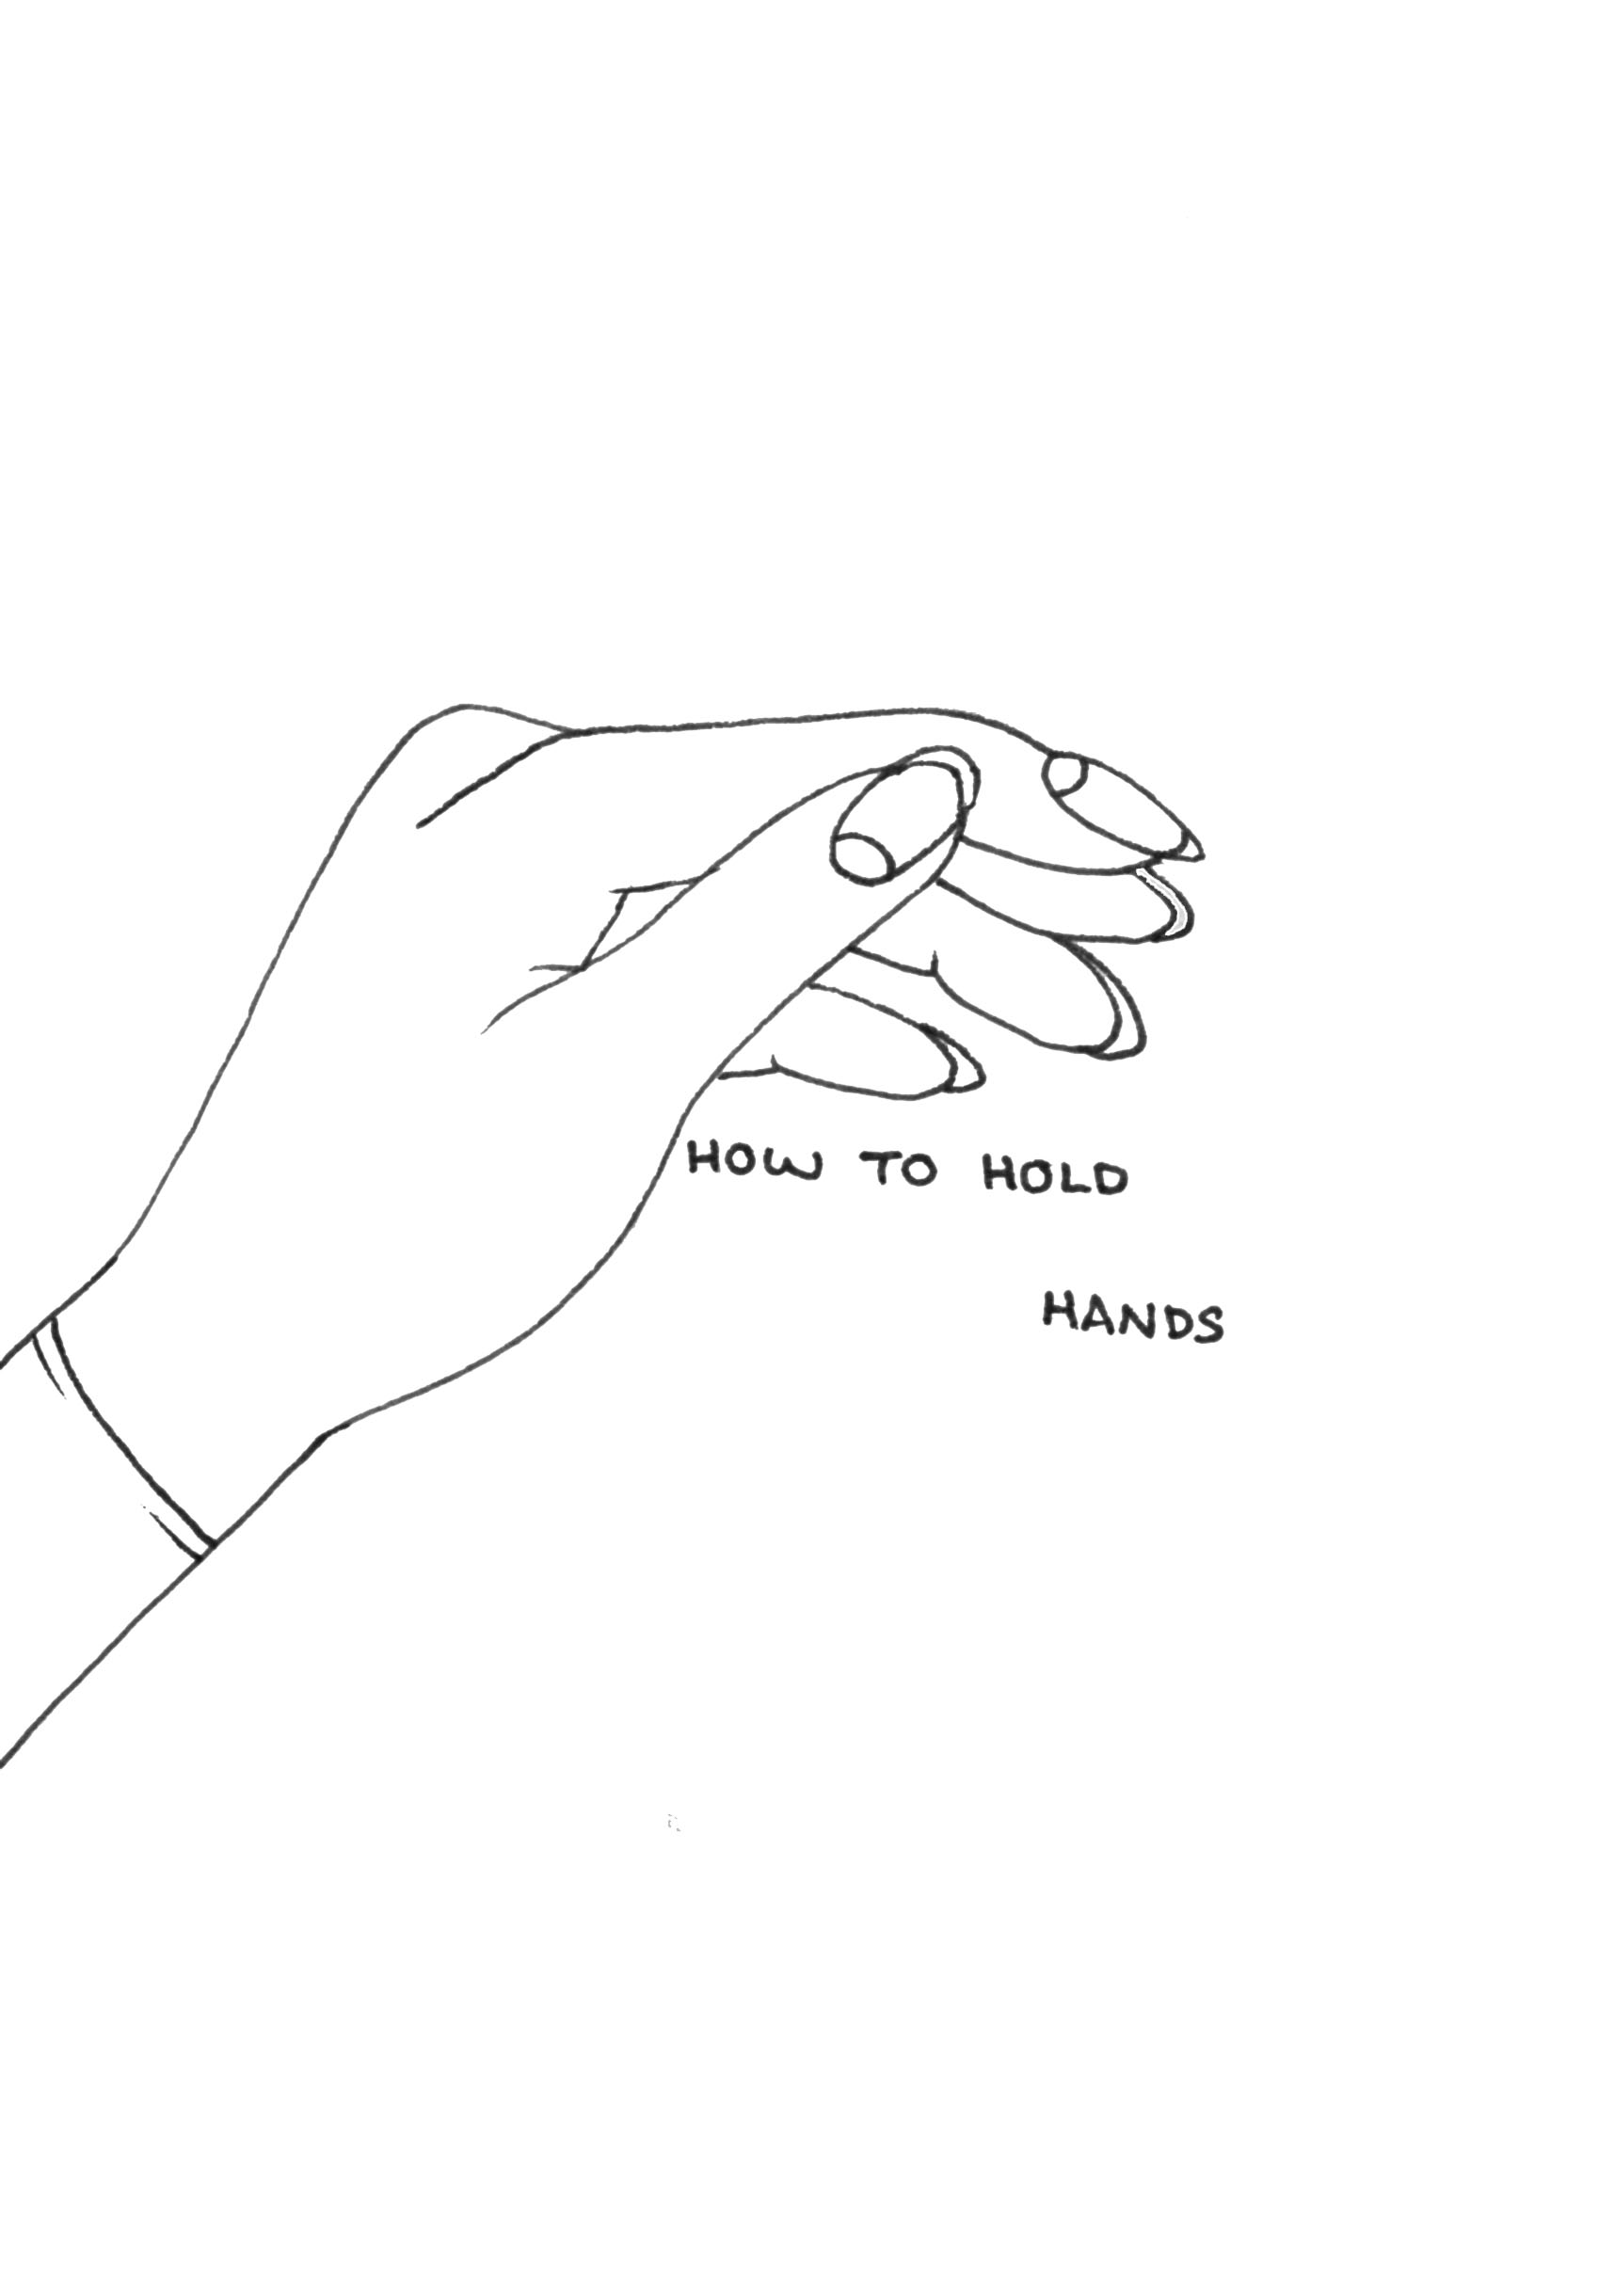 How to hold hands 3.jpeg